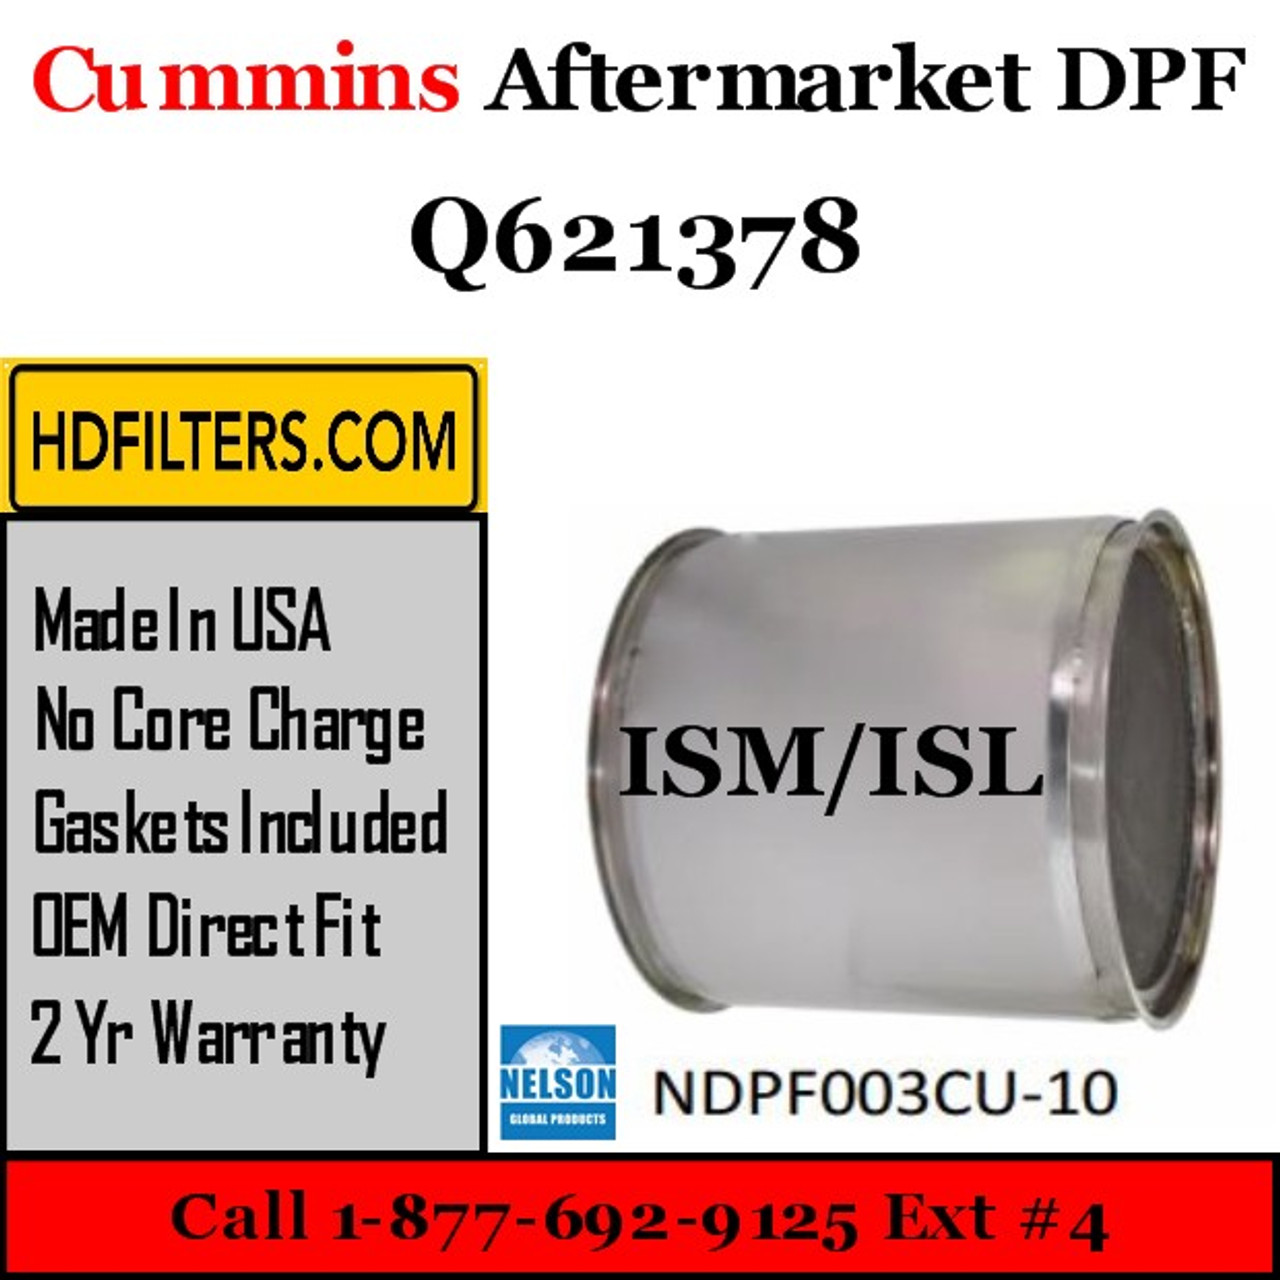 Q621378-NDPF003CU-10 Q621378 Cummins ISM ISL Engine Diesel Particulate Filter DPF